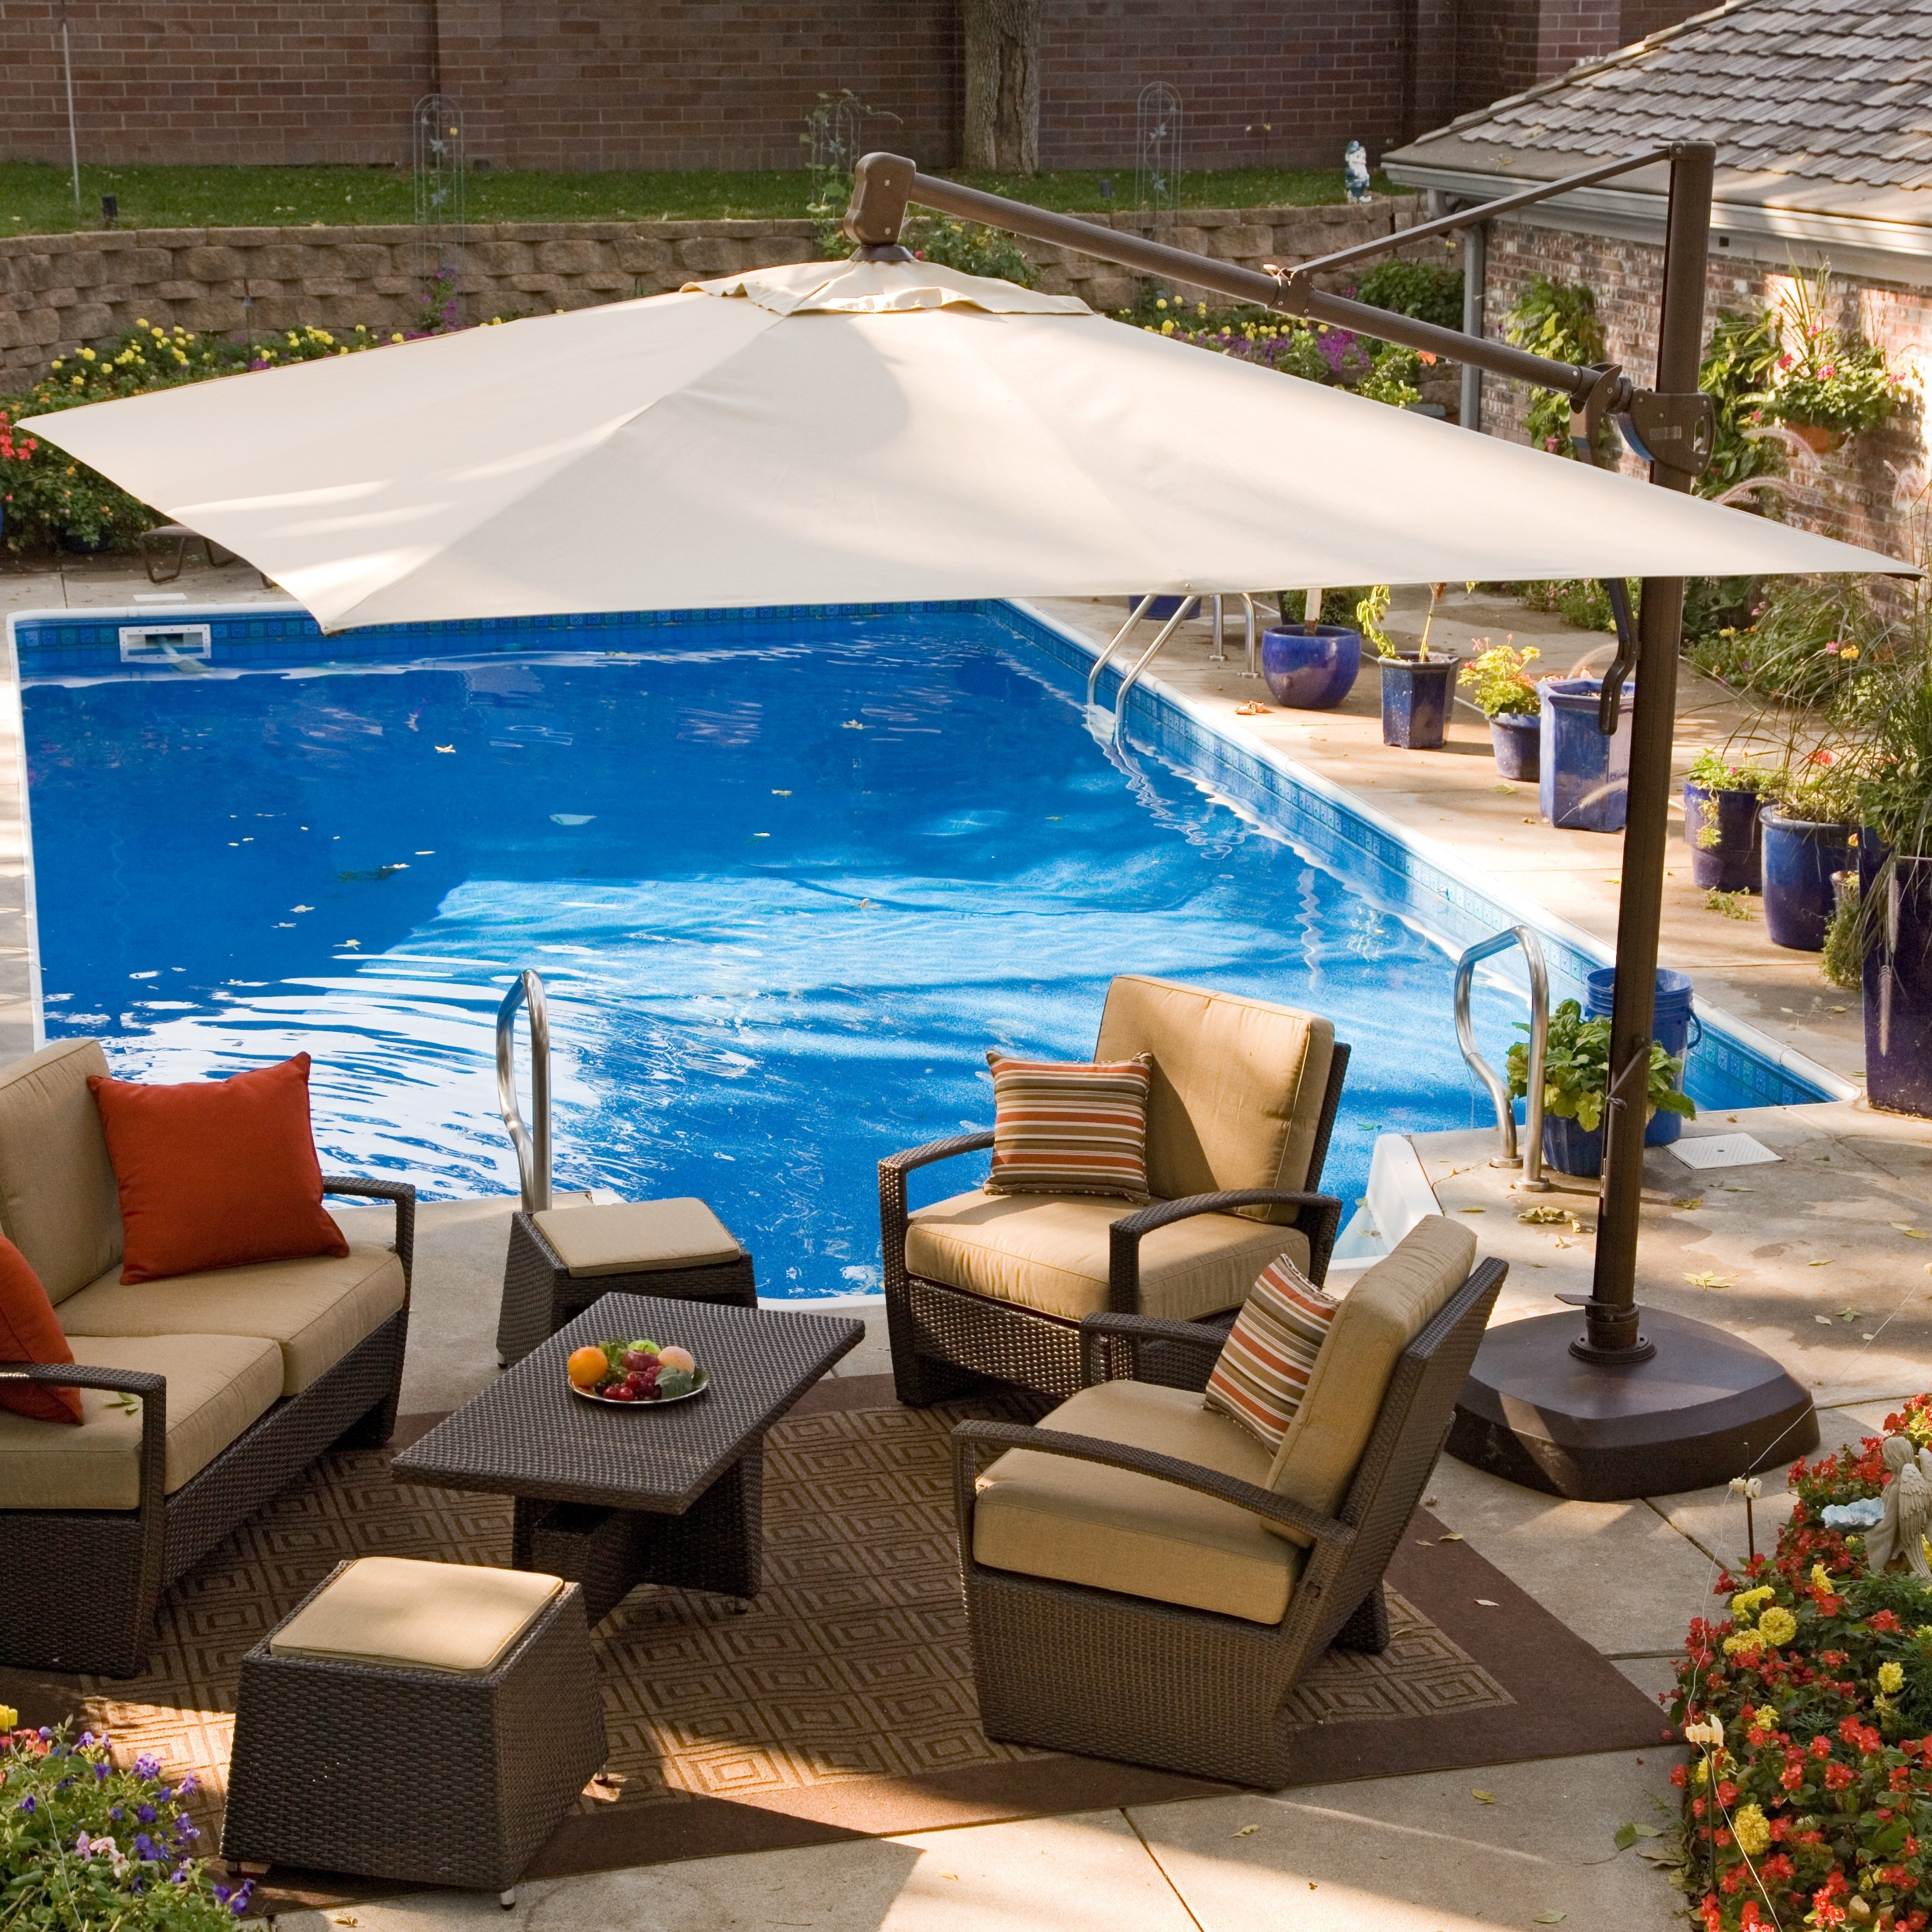 Most Recently Released Patio Ideas: Heavy Duty Patio Umbrella With White Patio Umbrella And Within Patio Conversation Sets With Umbrella (View 11 of 20)